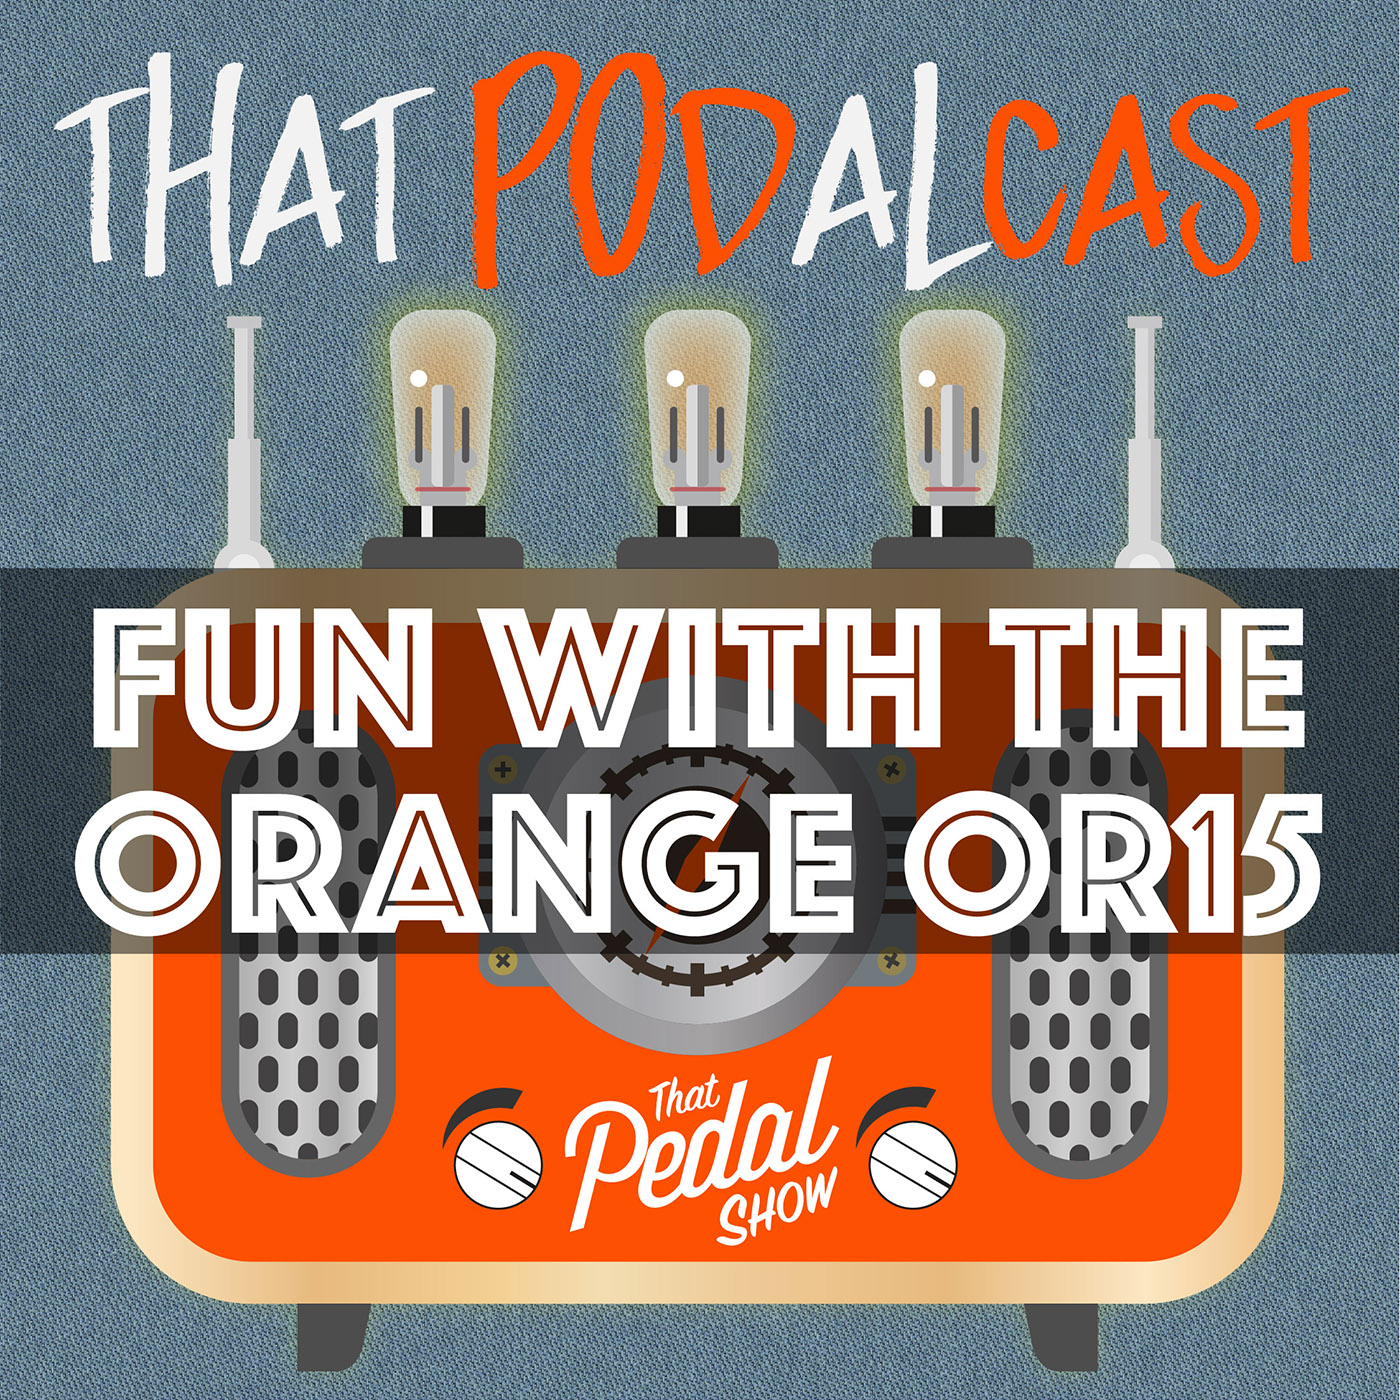 Getting To Know The Orange OR15 Guitar Amp